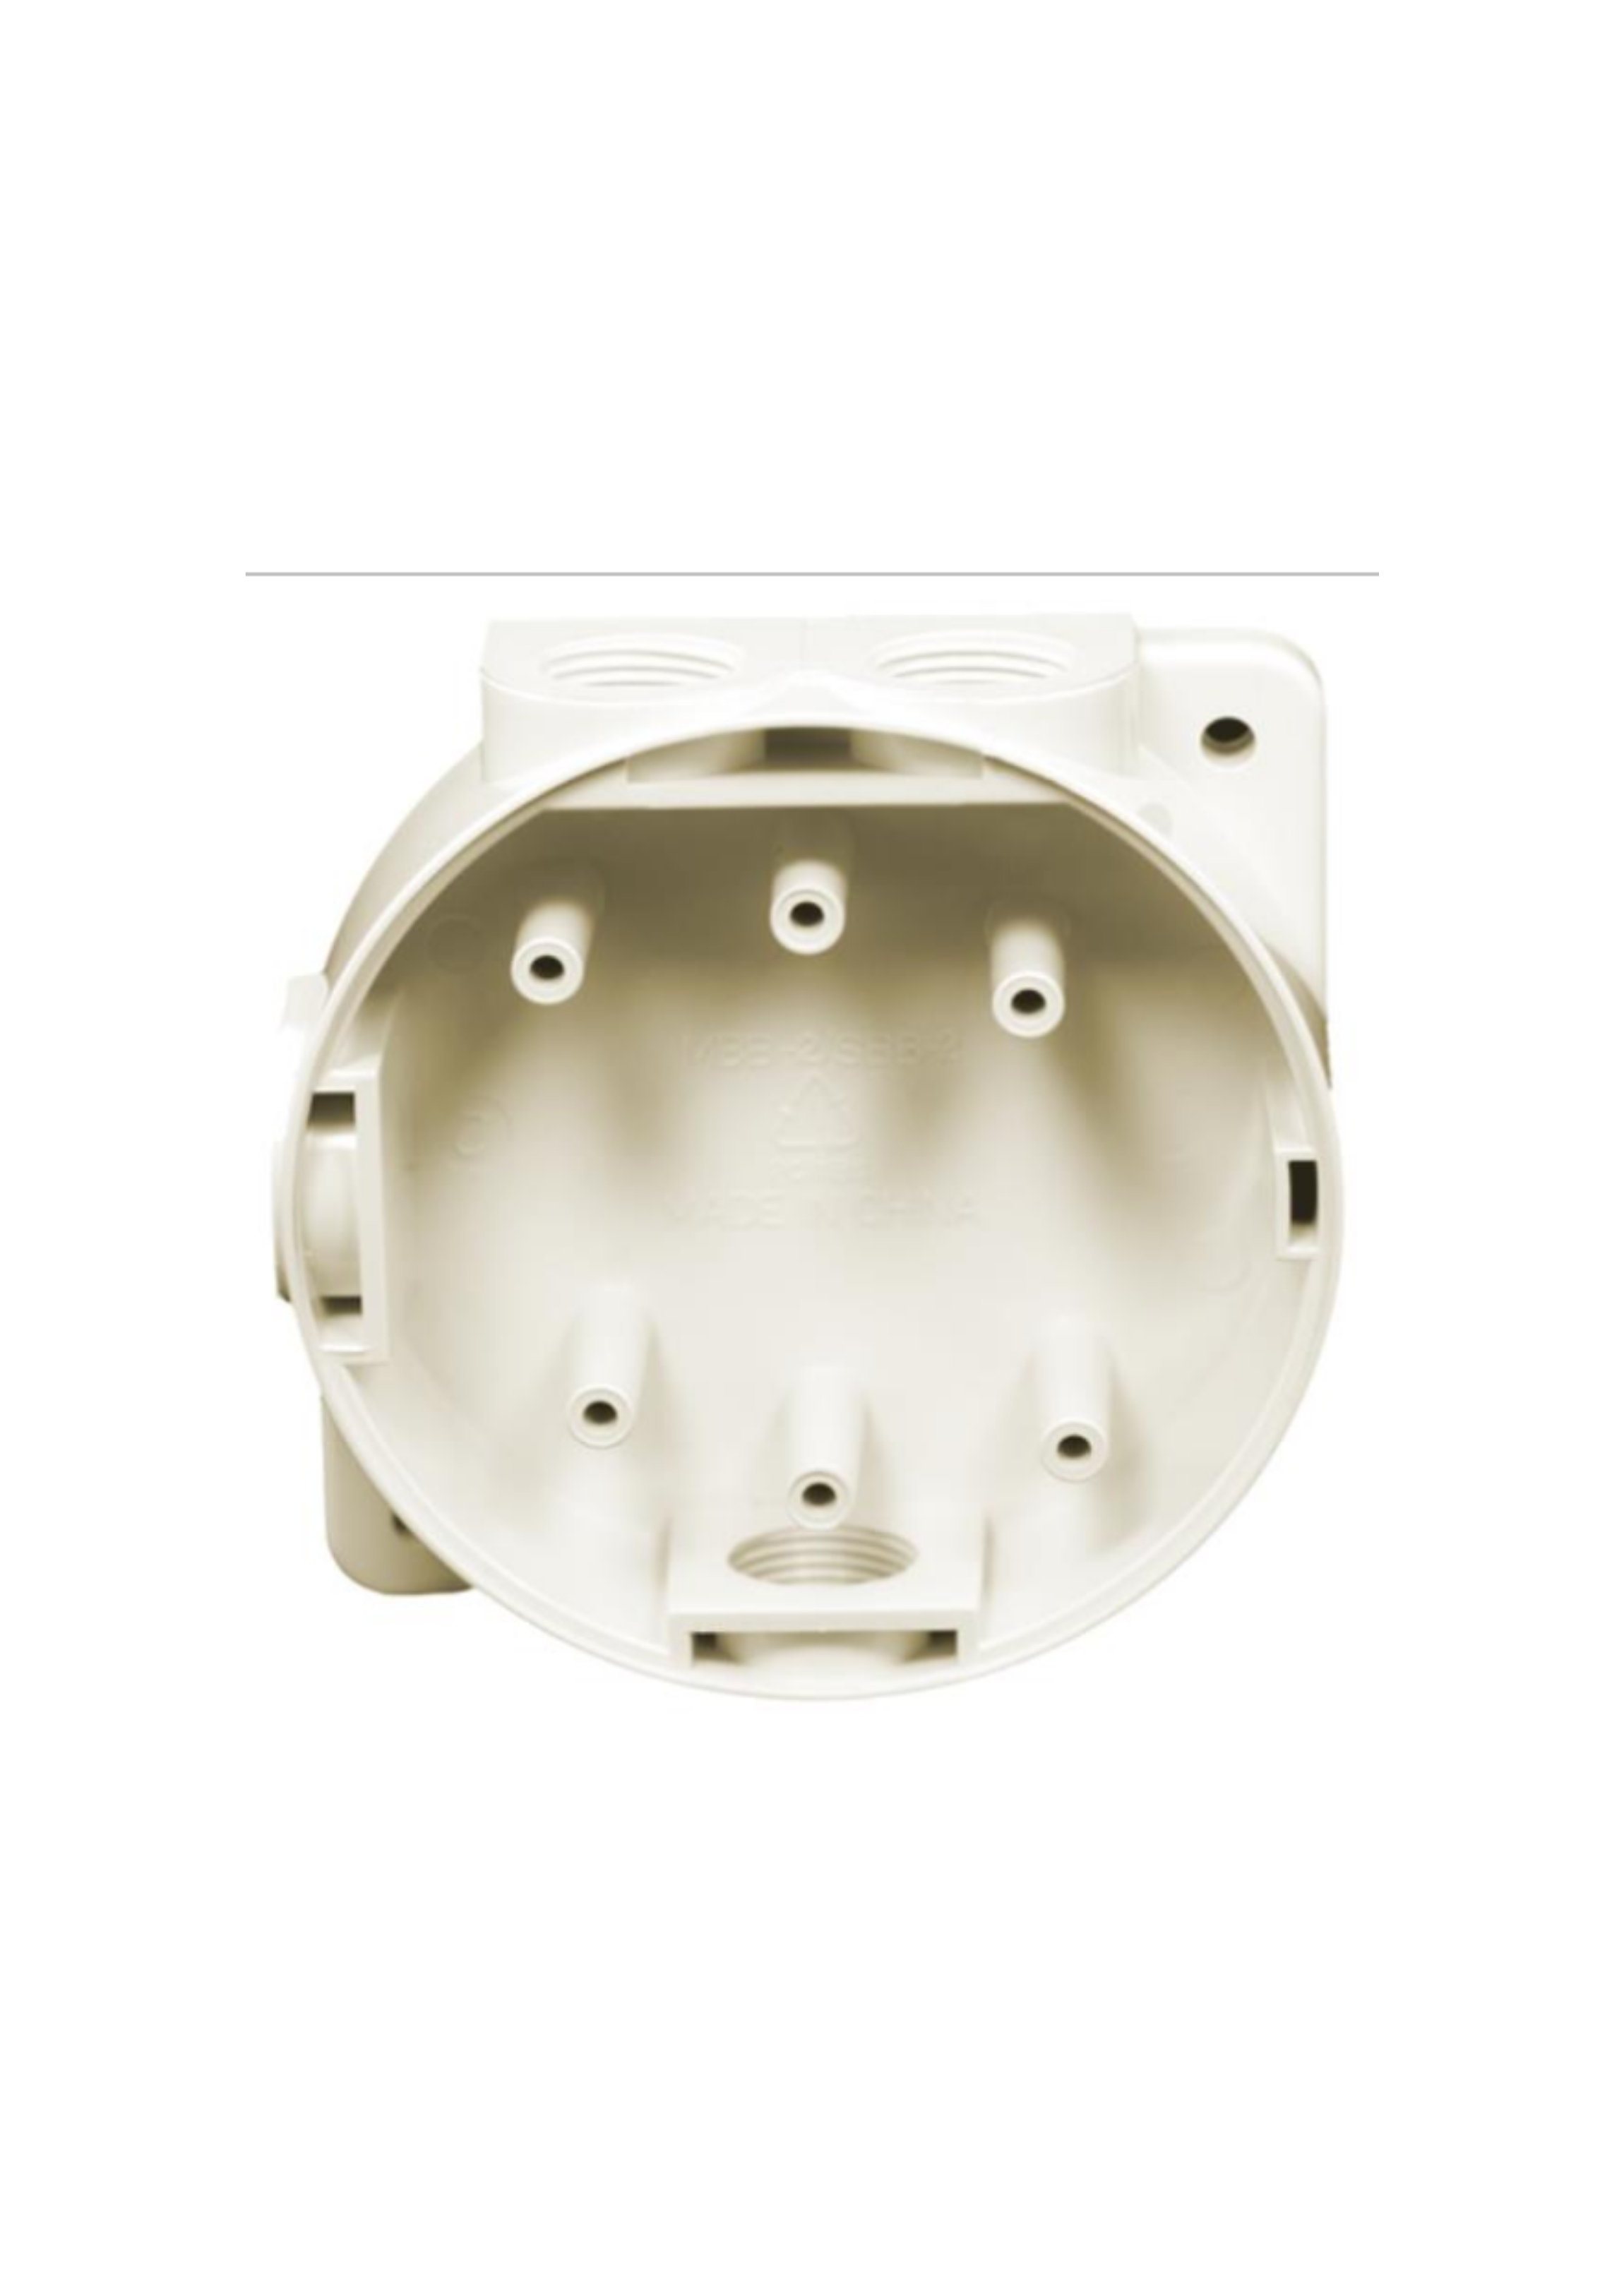 Marine Mounting Back Box with Glands - White 16706...